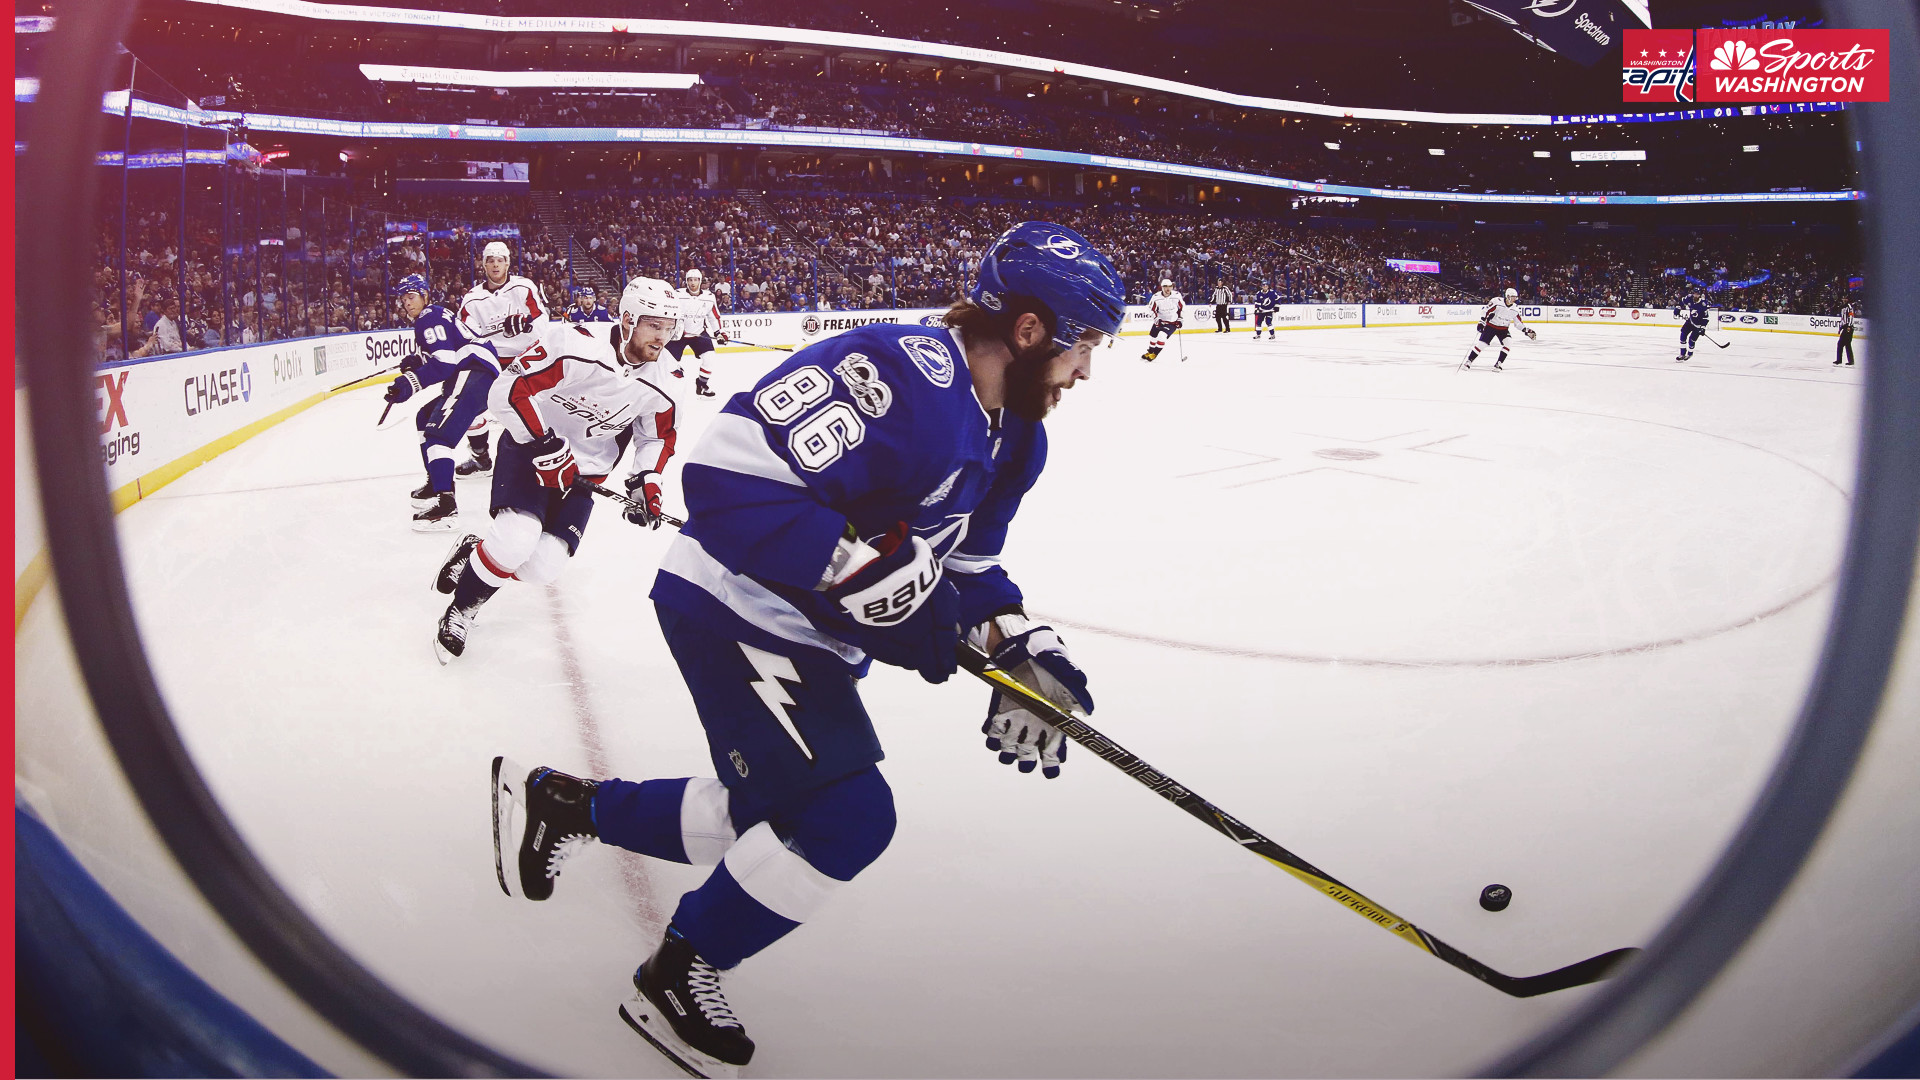 1920x1080 NHL Stanley Cup Playoffs 2018: Capitals vs. Lightning full schedule  announced, date, time, TV channel, how to watch | NBC Sports Washington